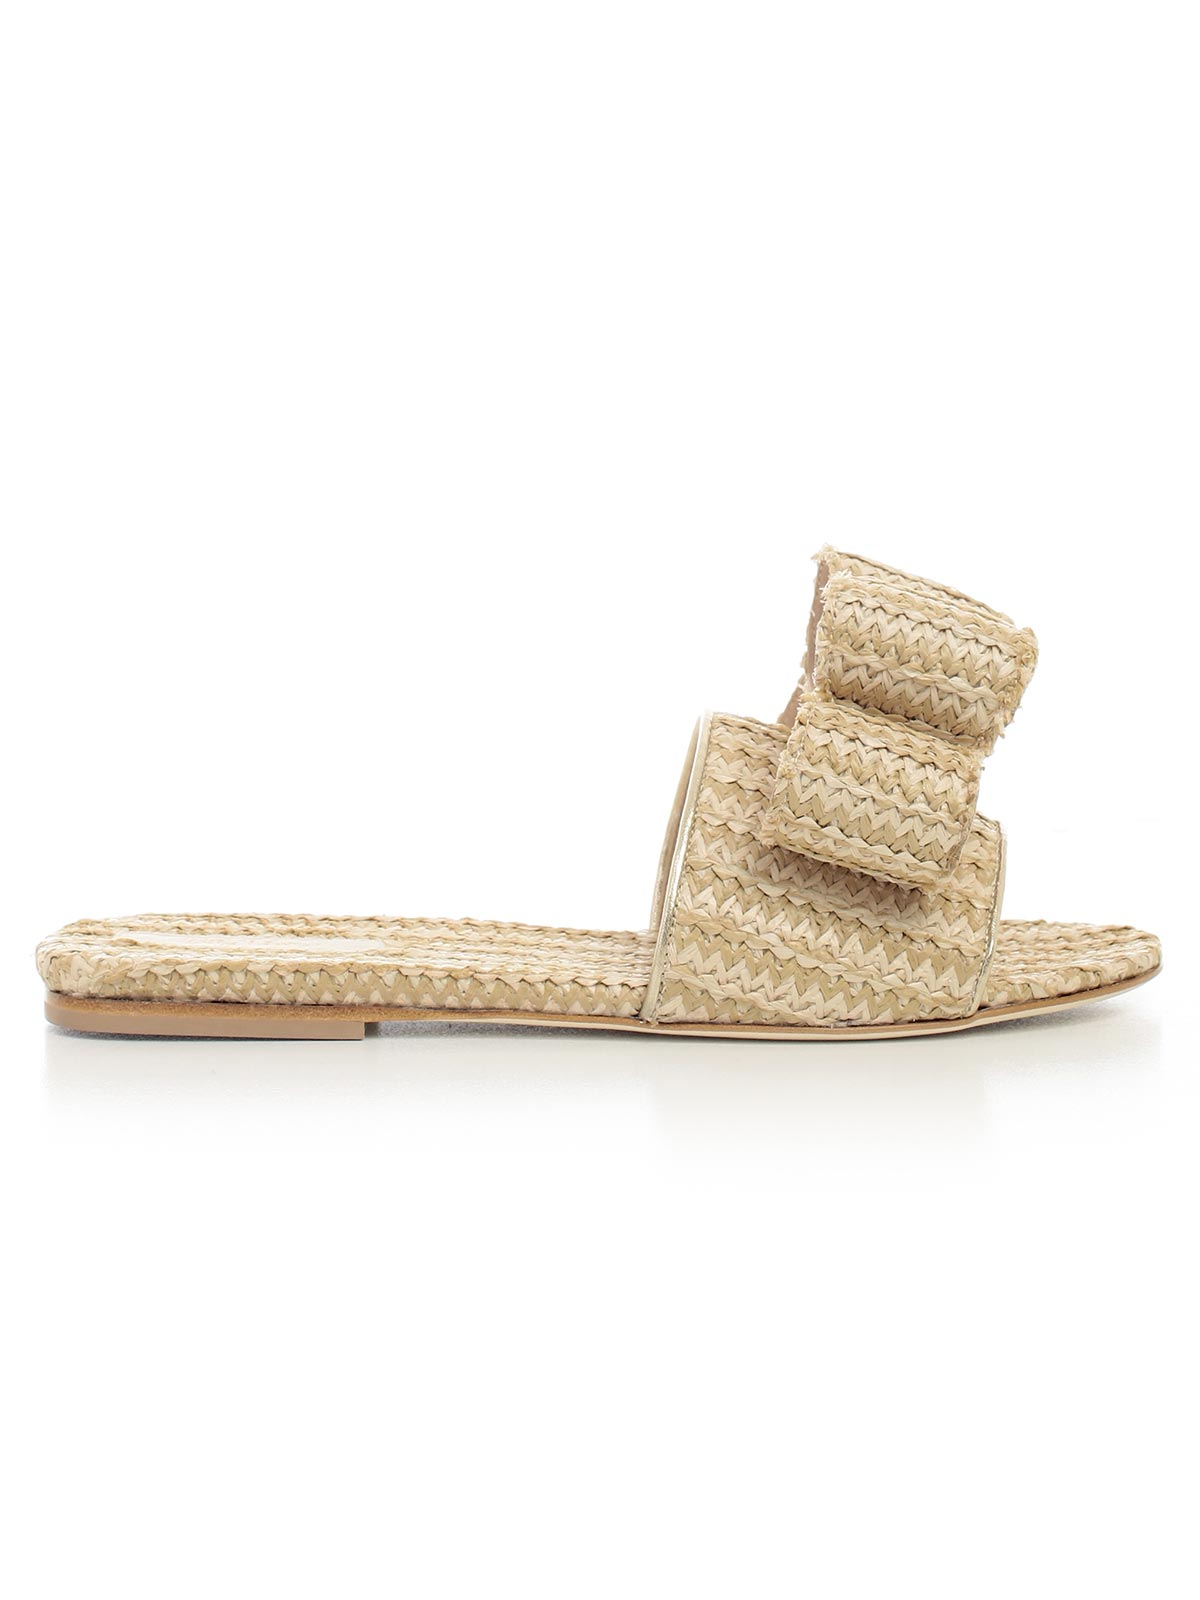 Picture of POLLY PLUME Sandals